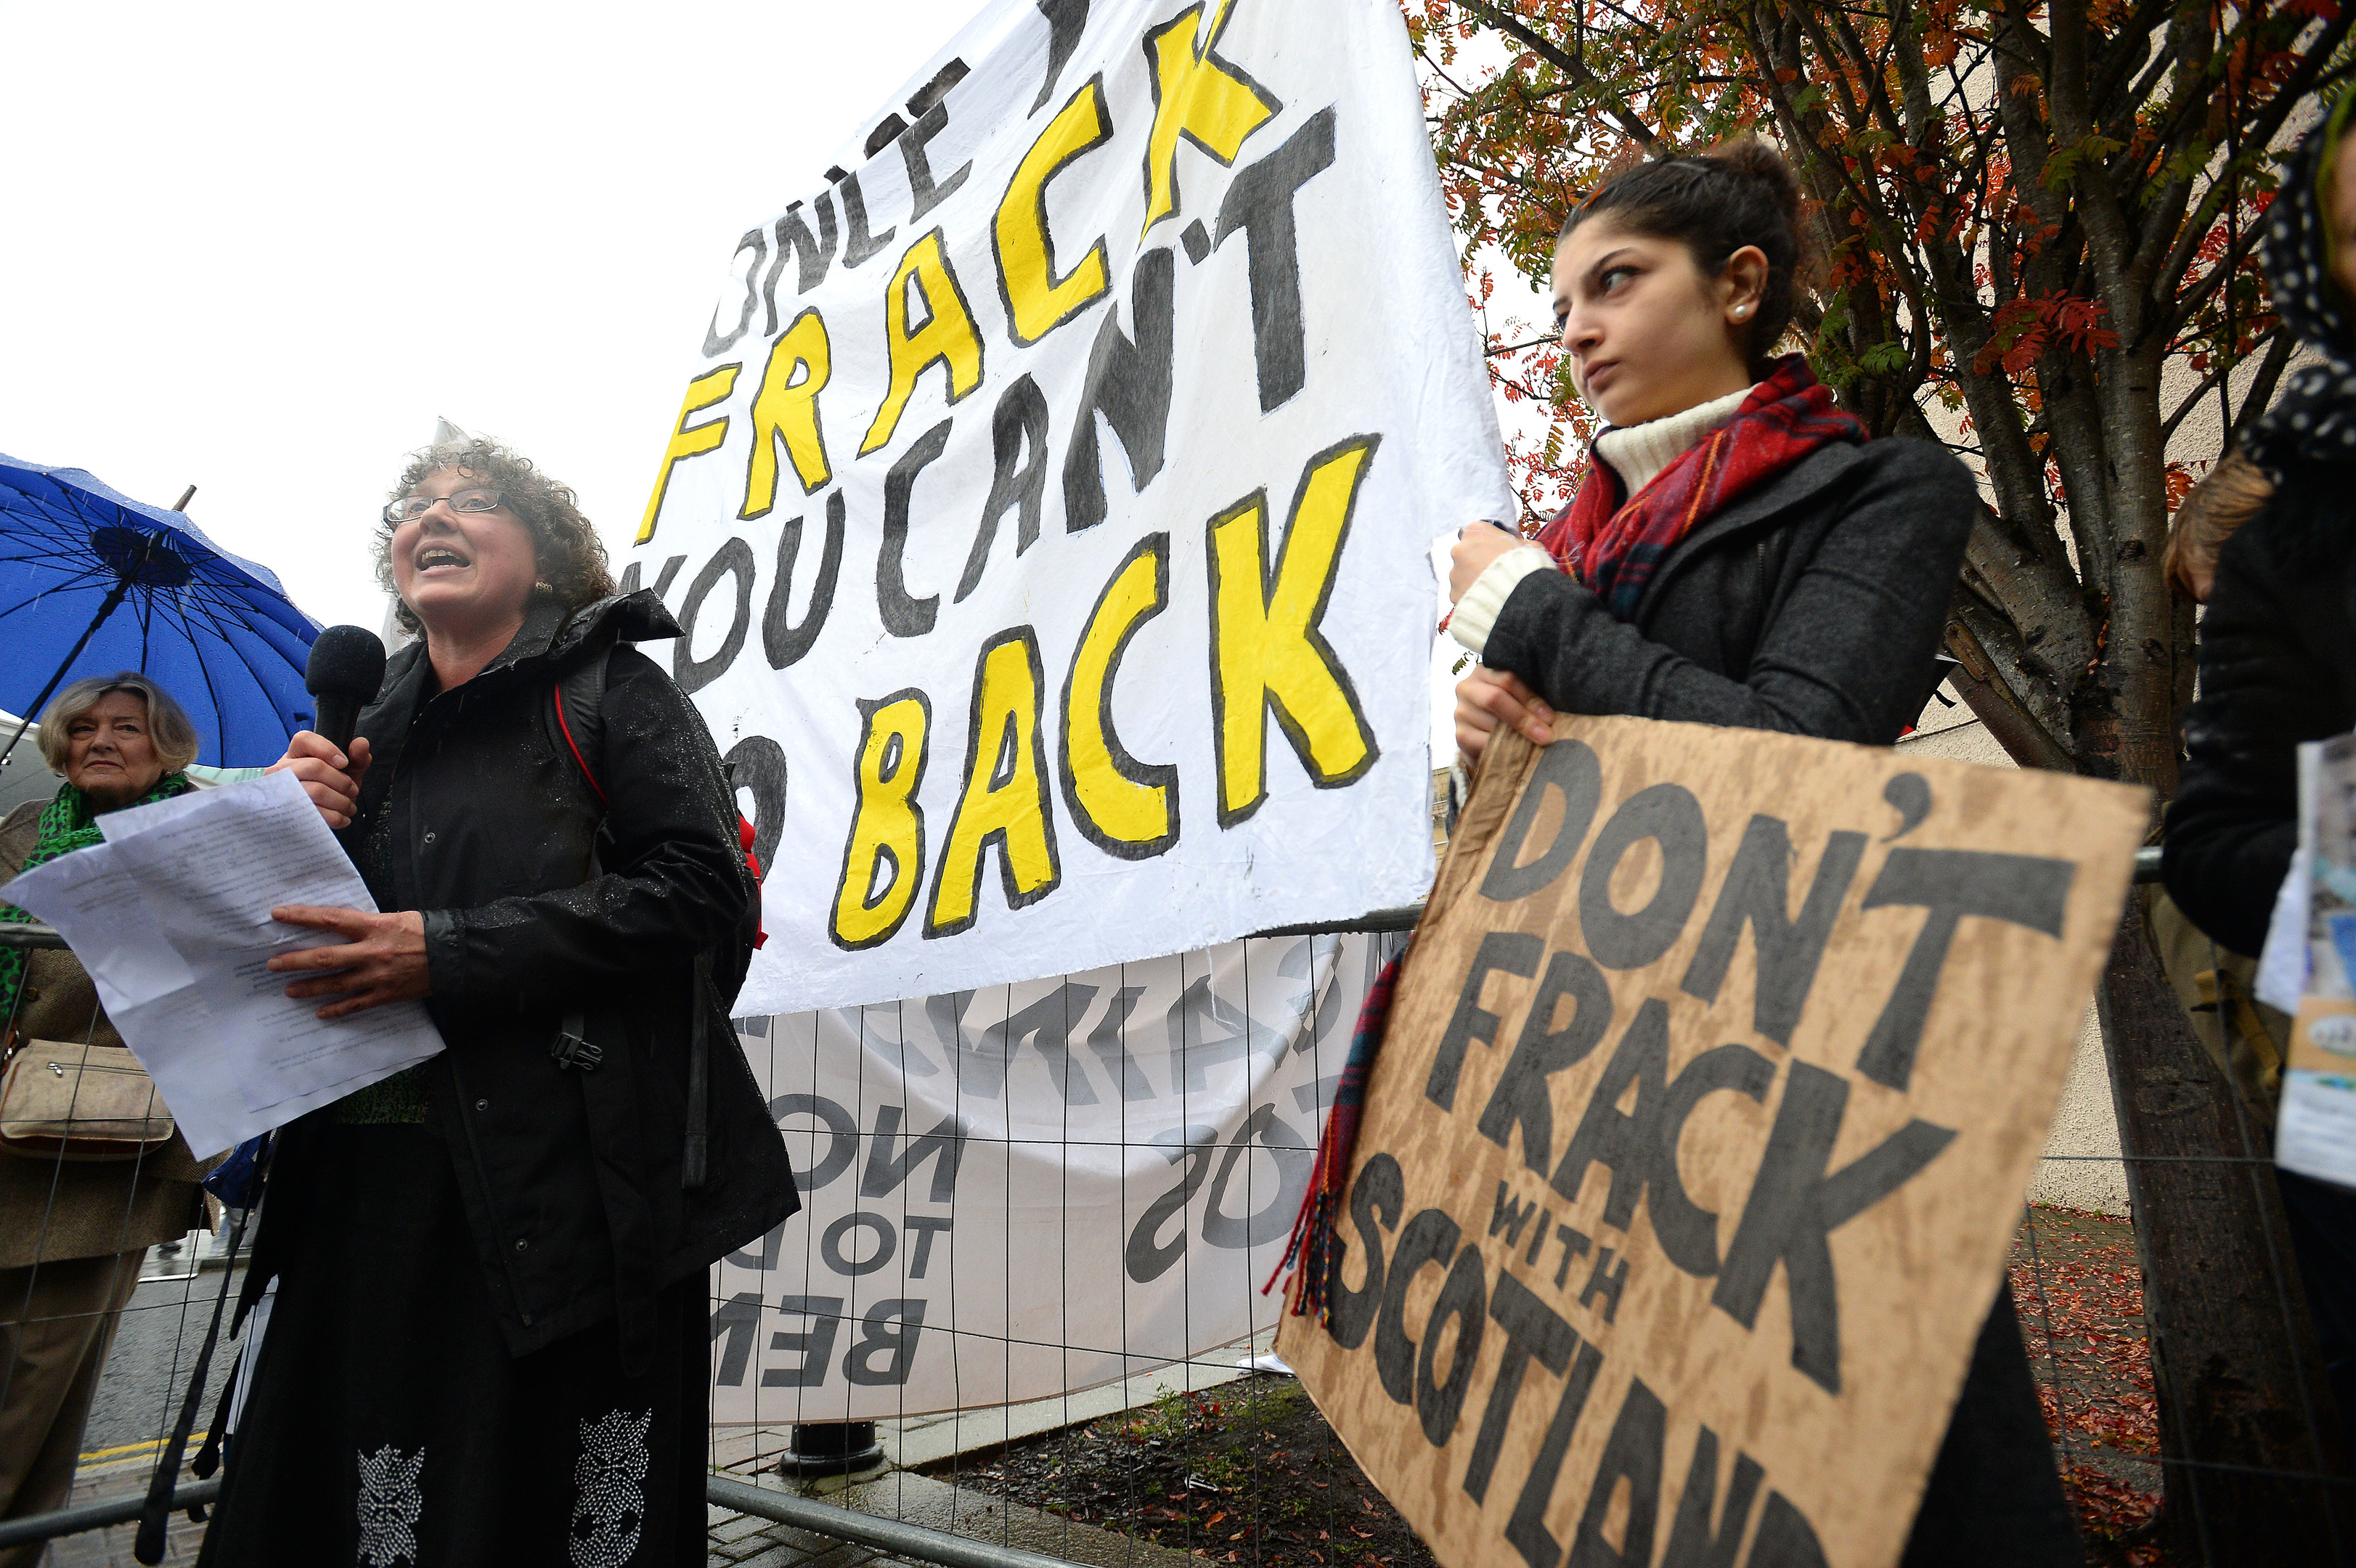 A protest against Fracking in Scotland outside the SNP Autumn Conference at Perth Concert Hall